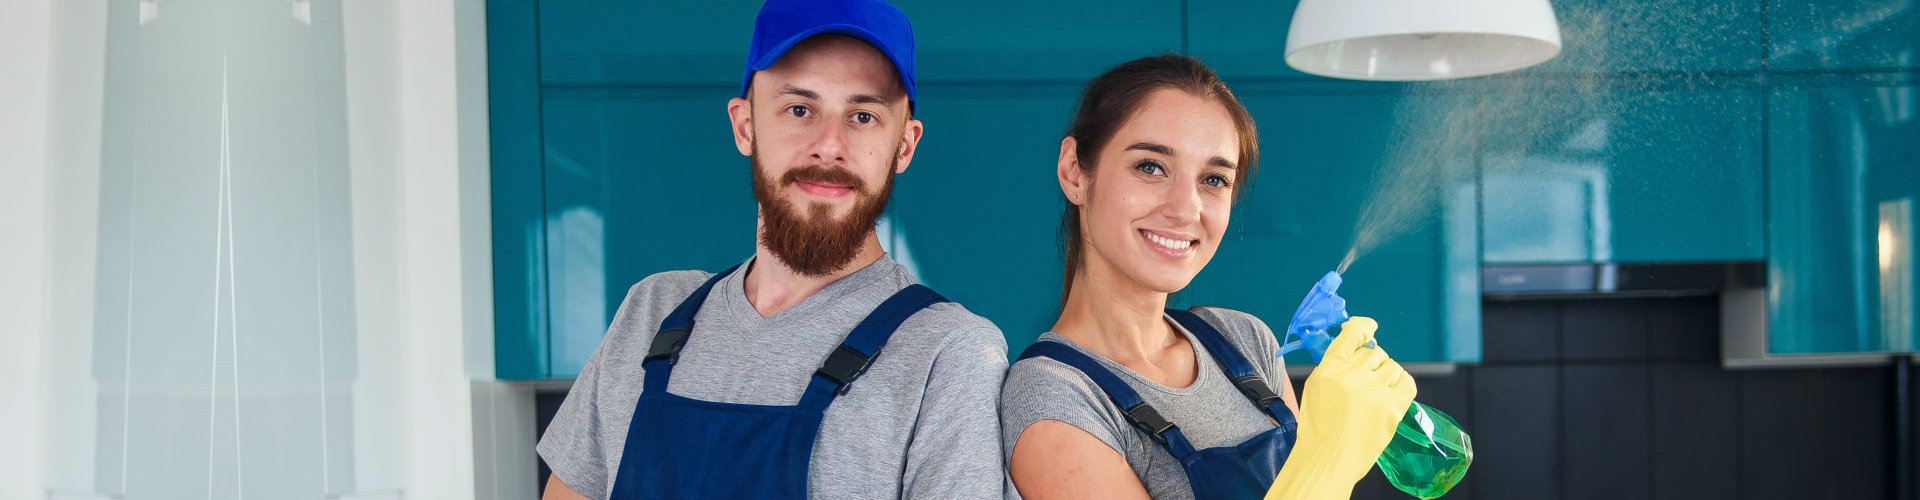 two cleaners staff smiling